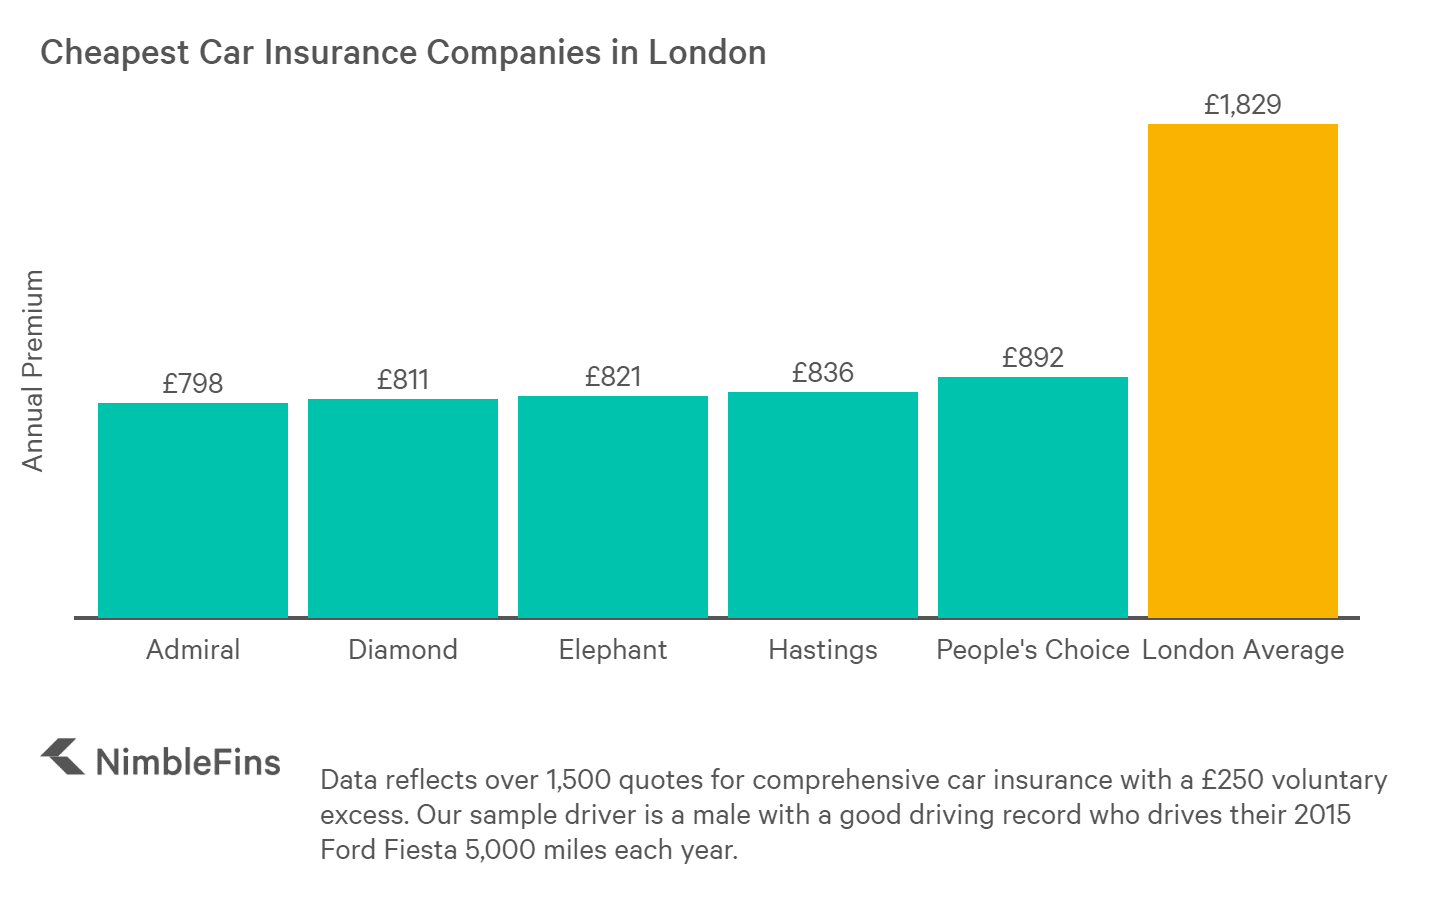 chart showing cheap car insurance companies in London, England